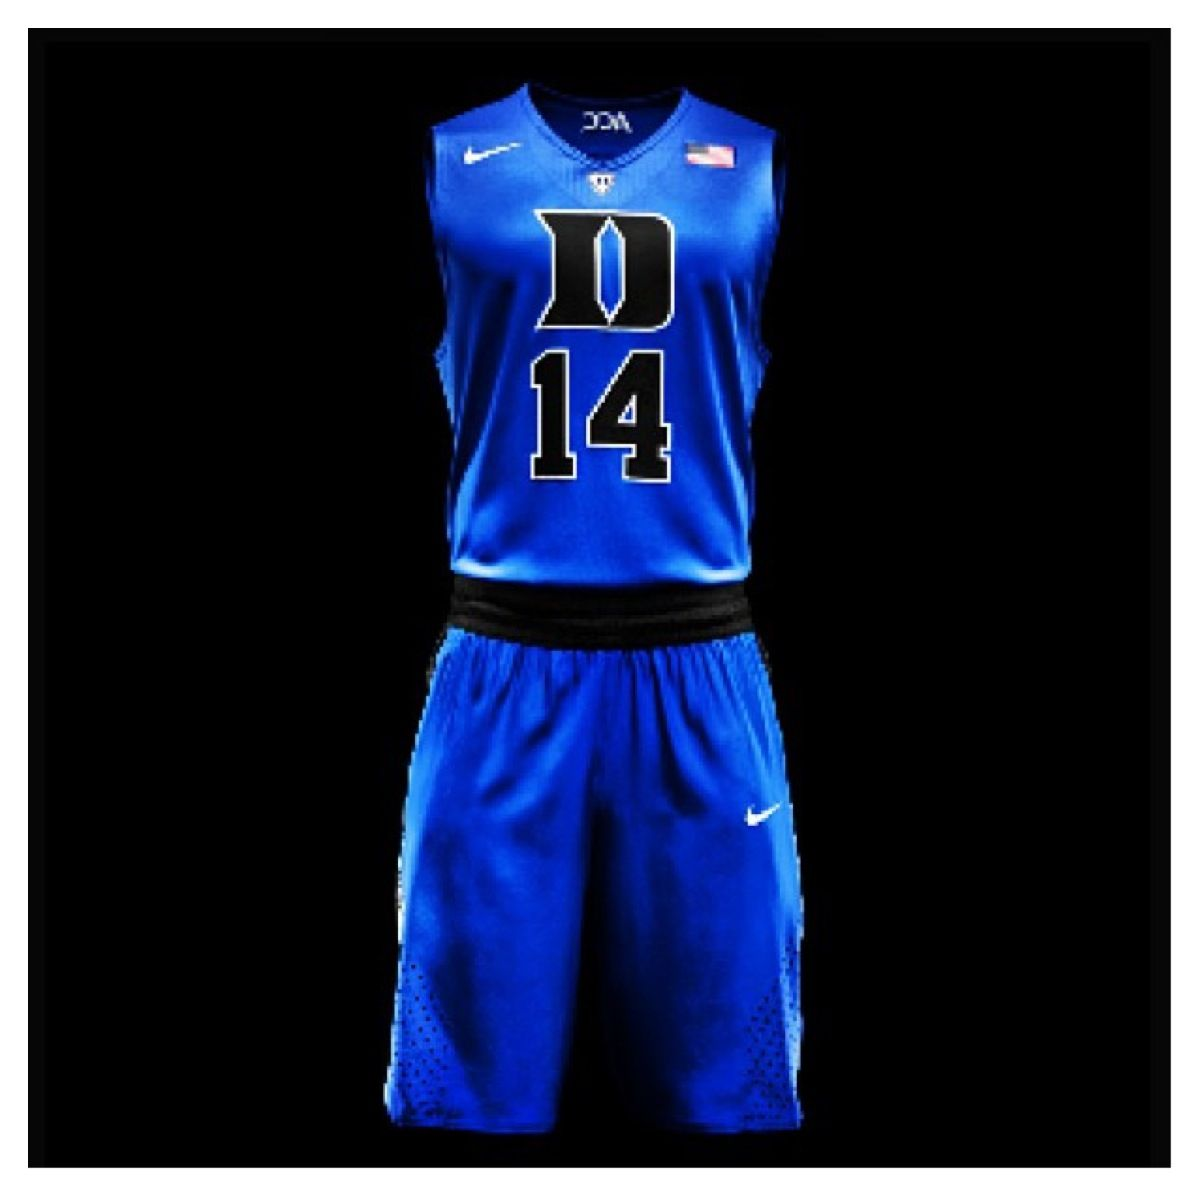 duke guys 17032010 in college hoops, no team is more hated than the duke blue devils why you could point to coach k's fake piety, the hoity-toityness of the actual school.